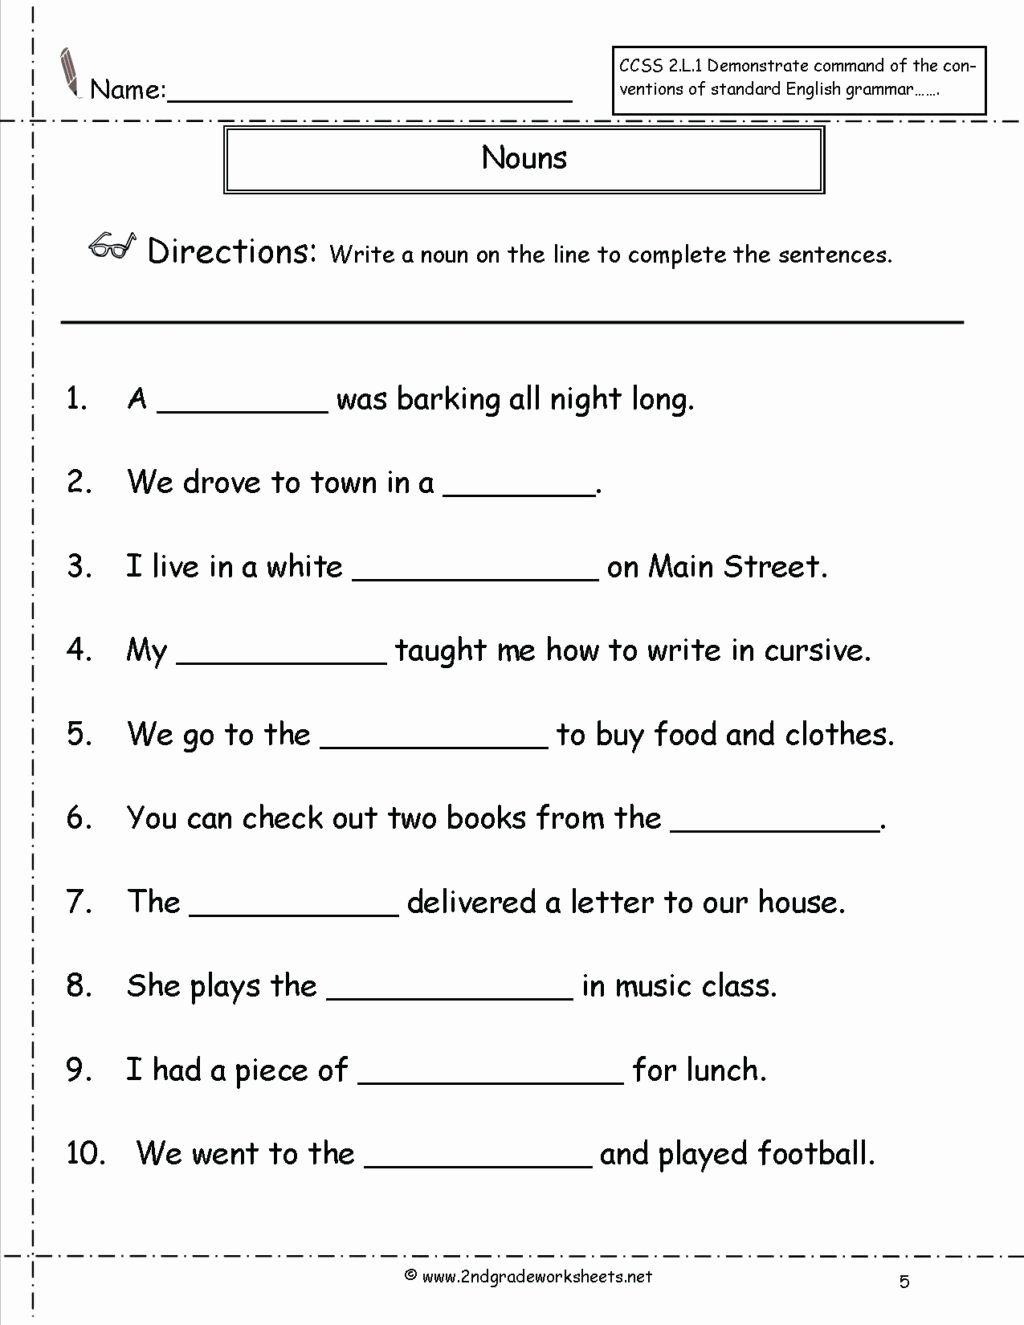 Possessive Pronoun Worksheet 3rd Grade Ideas Worksheet Free Printable Second Grade Reading